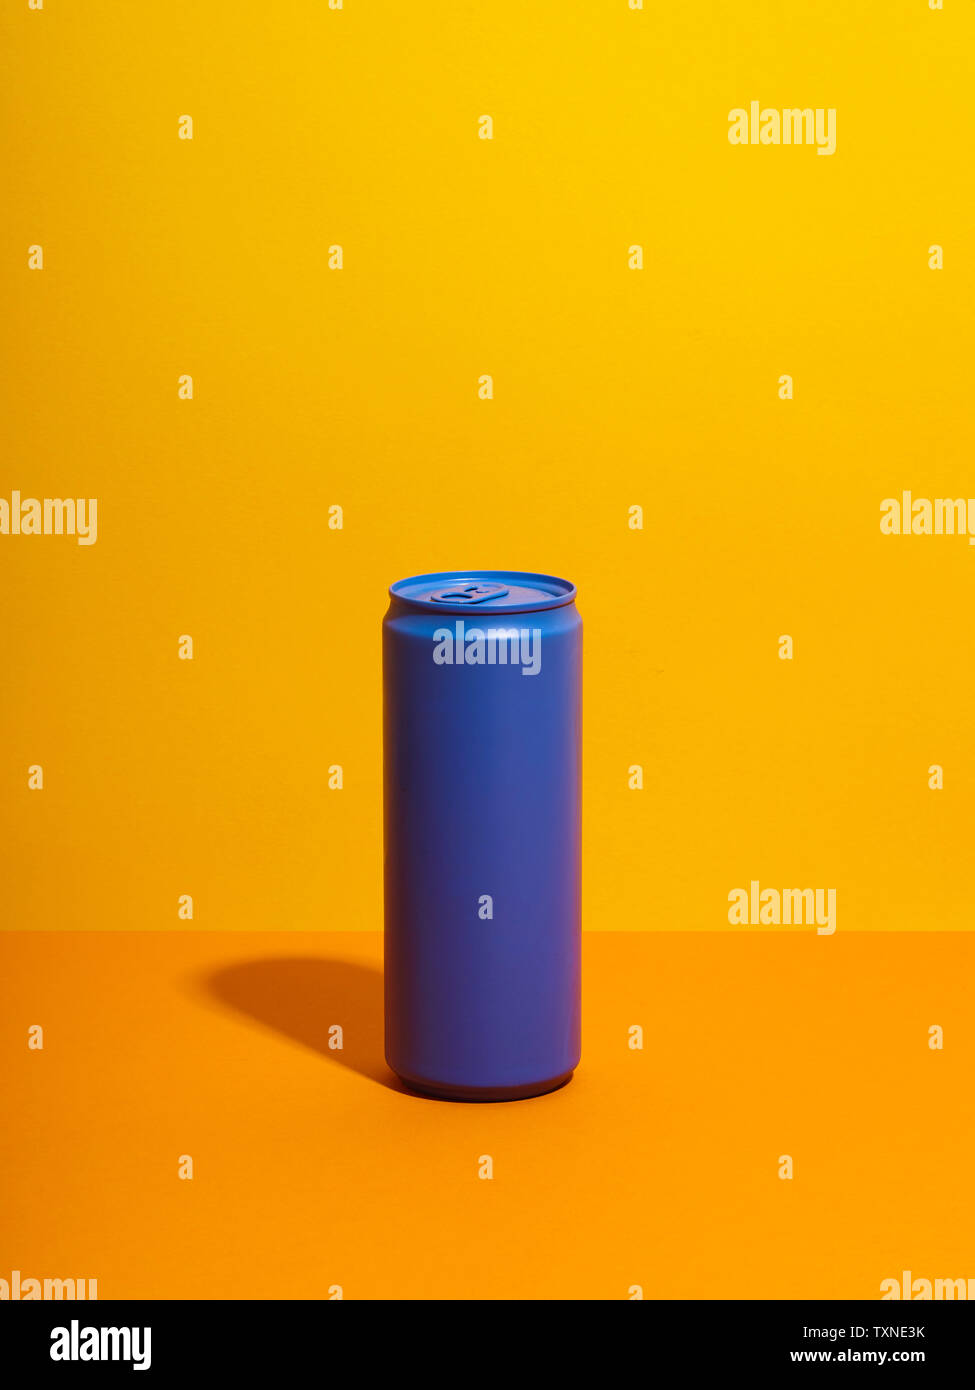 Still life with purple drink can and yellow background Stock Photo